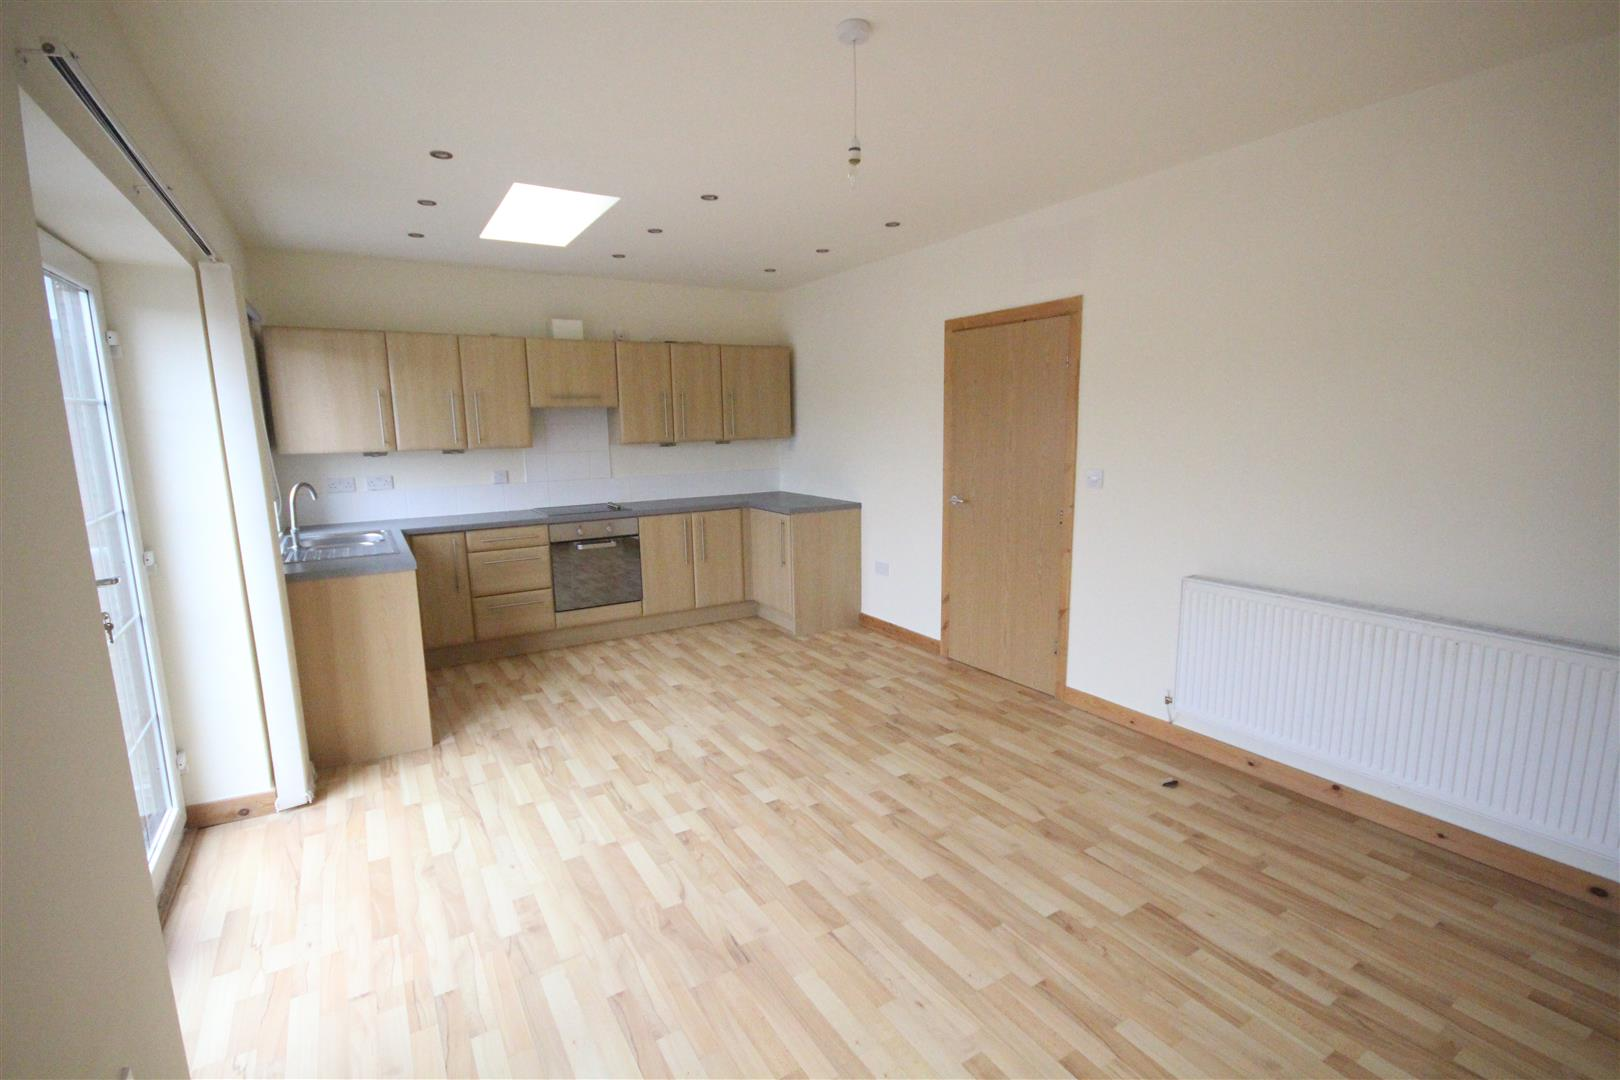 2 bedroom bungalow For Sale in Colne - IMG_0807.JPG